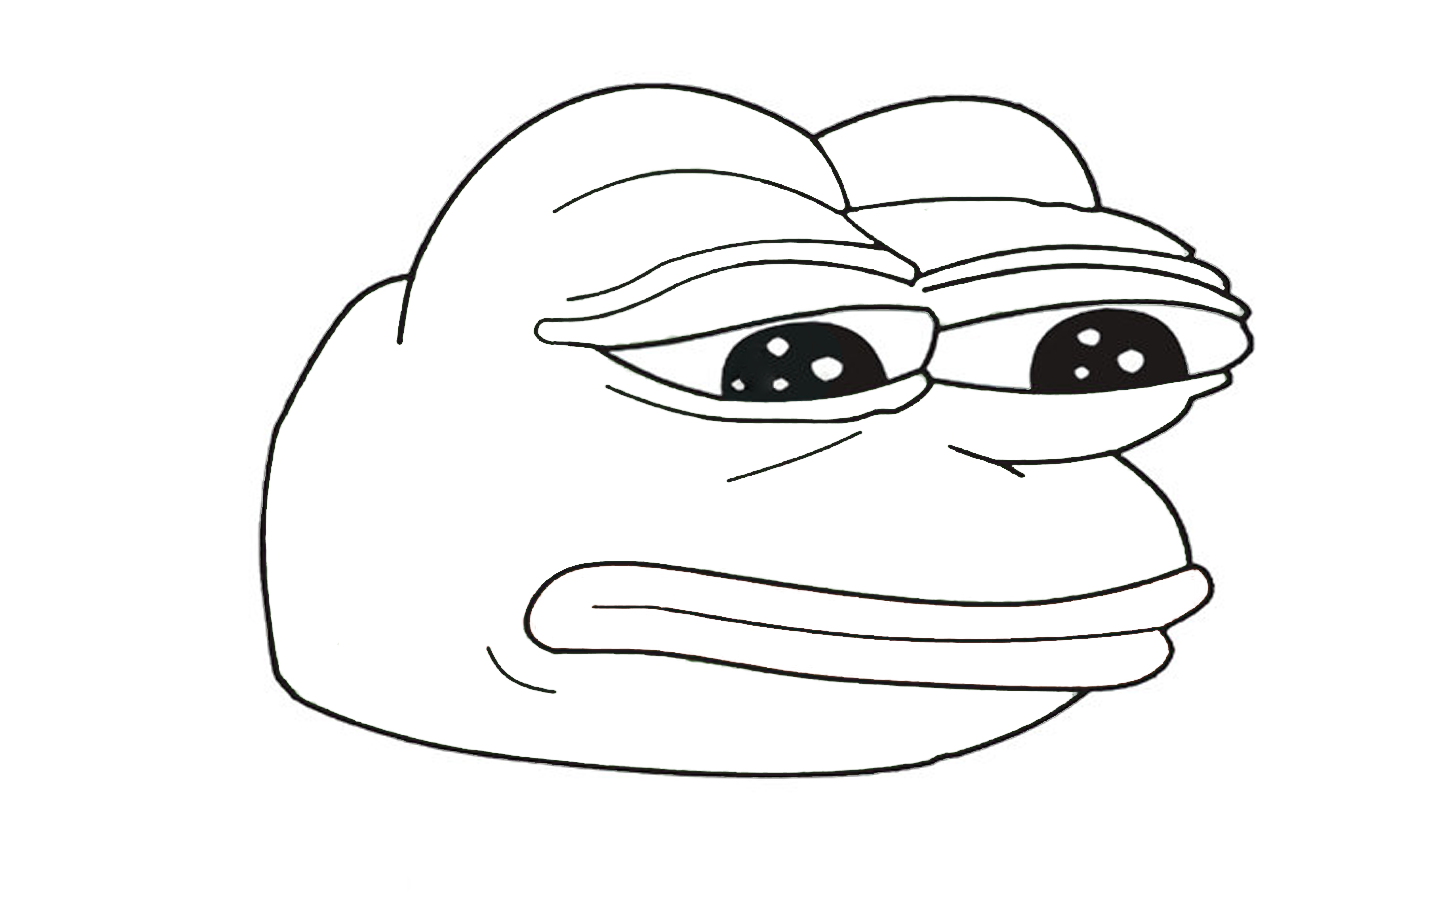 Meme Pepe The Frog Coloring Coloring Pages